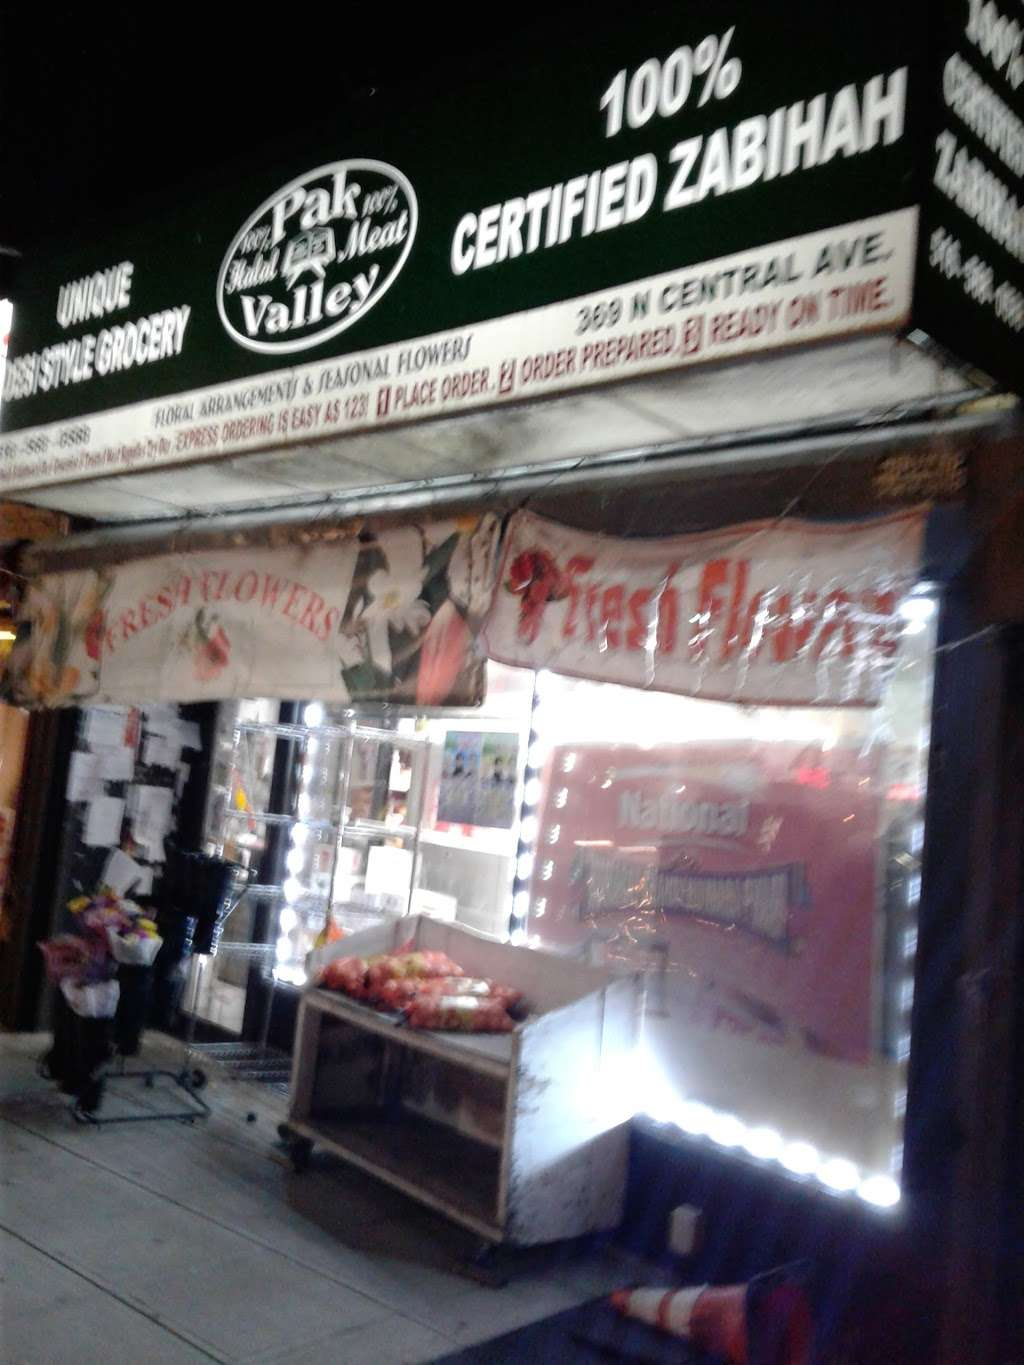 Pak Valley Halal Meats Inc - store    Photo 3 of 10   Address: 369 N Central Ave, Valley Stream, NY 11580, USA   Phone: (516) 568-0588